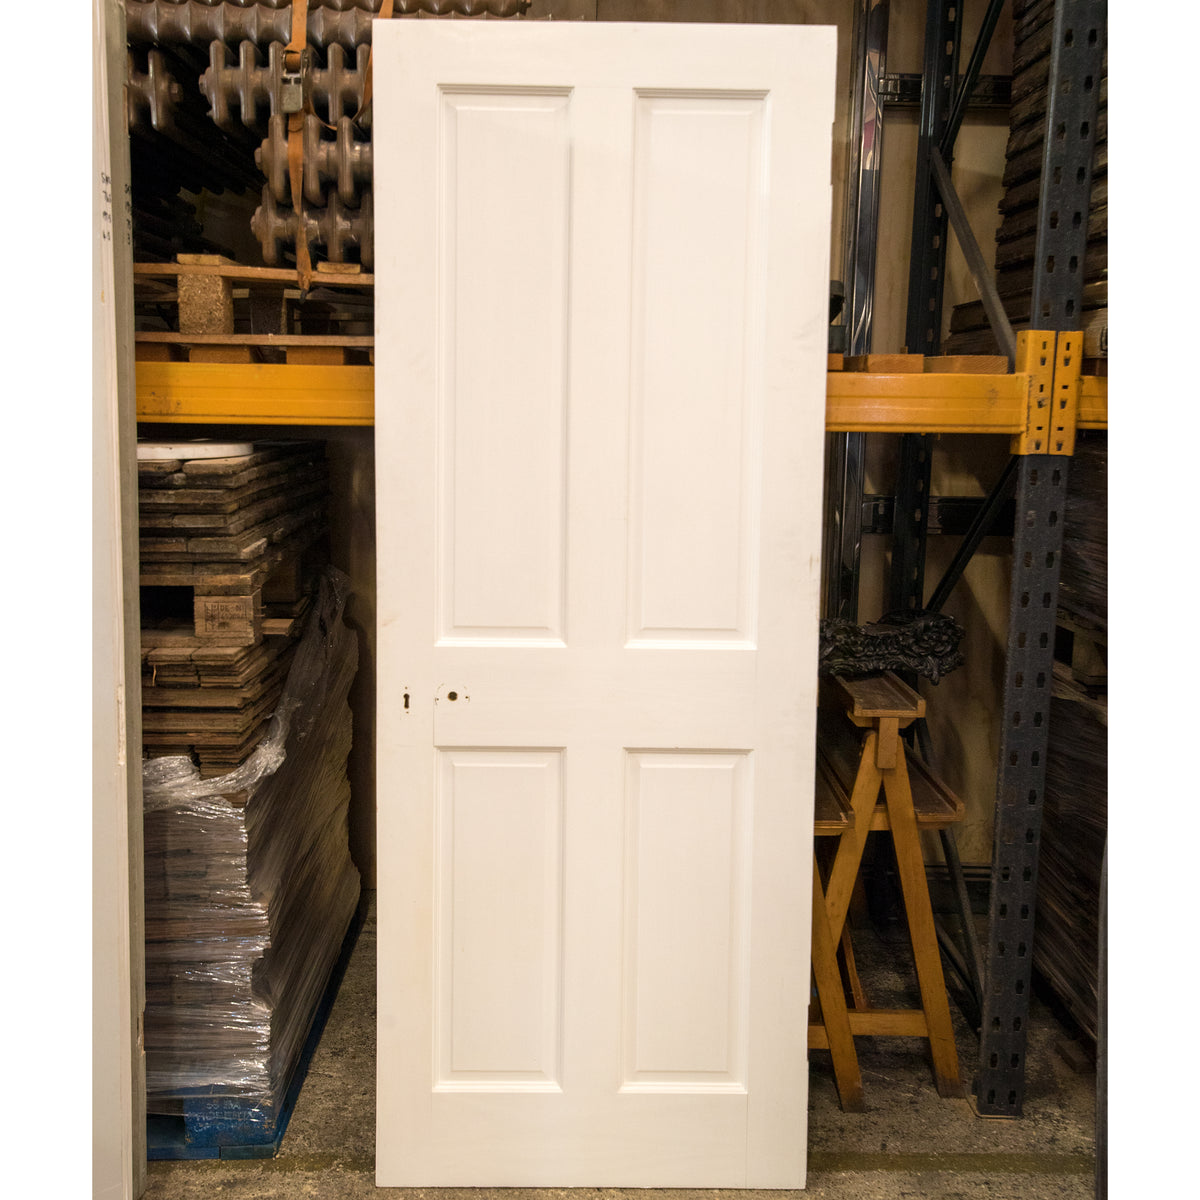 Reclaimed Victorian Style 4 Panel Door - 198.5cm x 76cm | The Architectural Forum